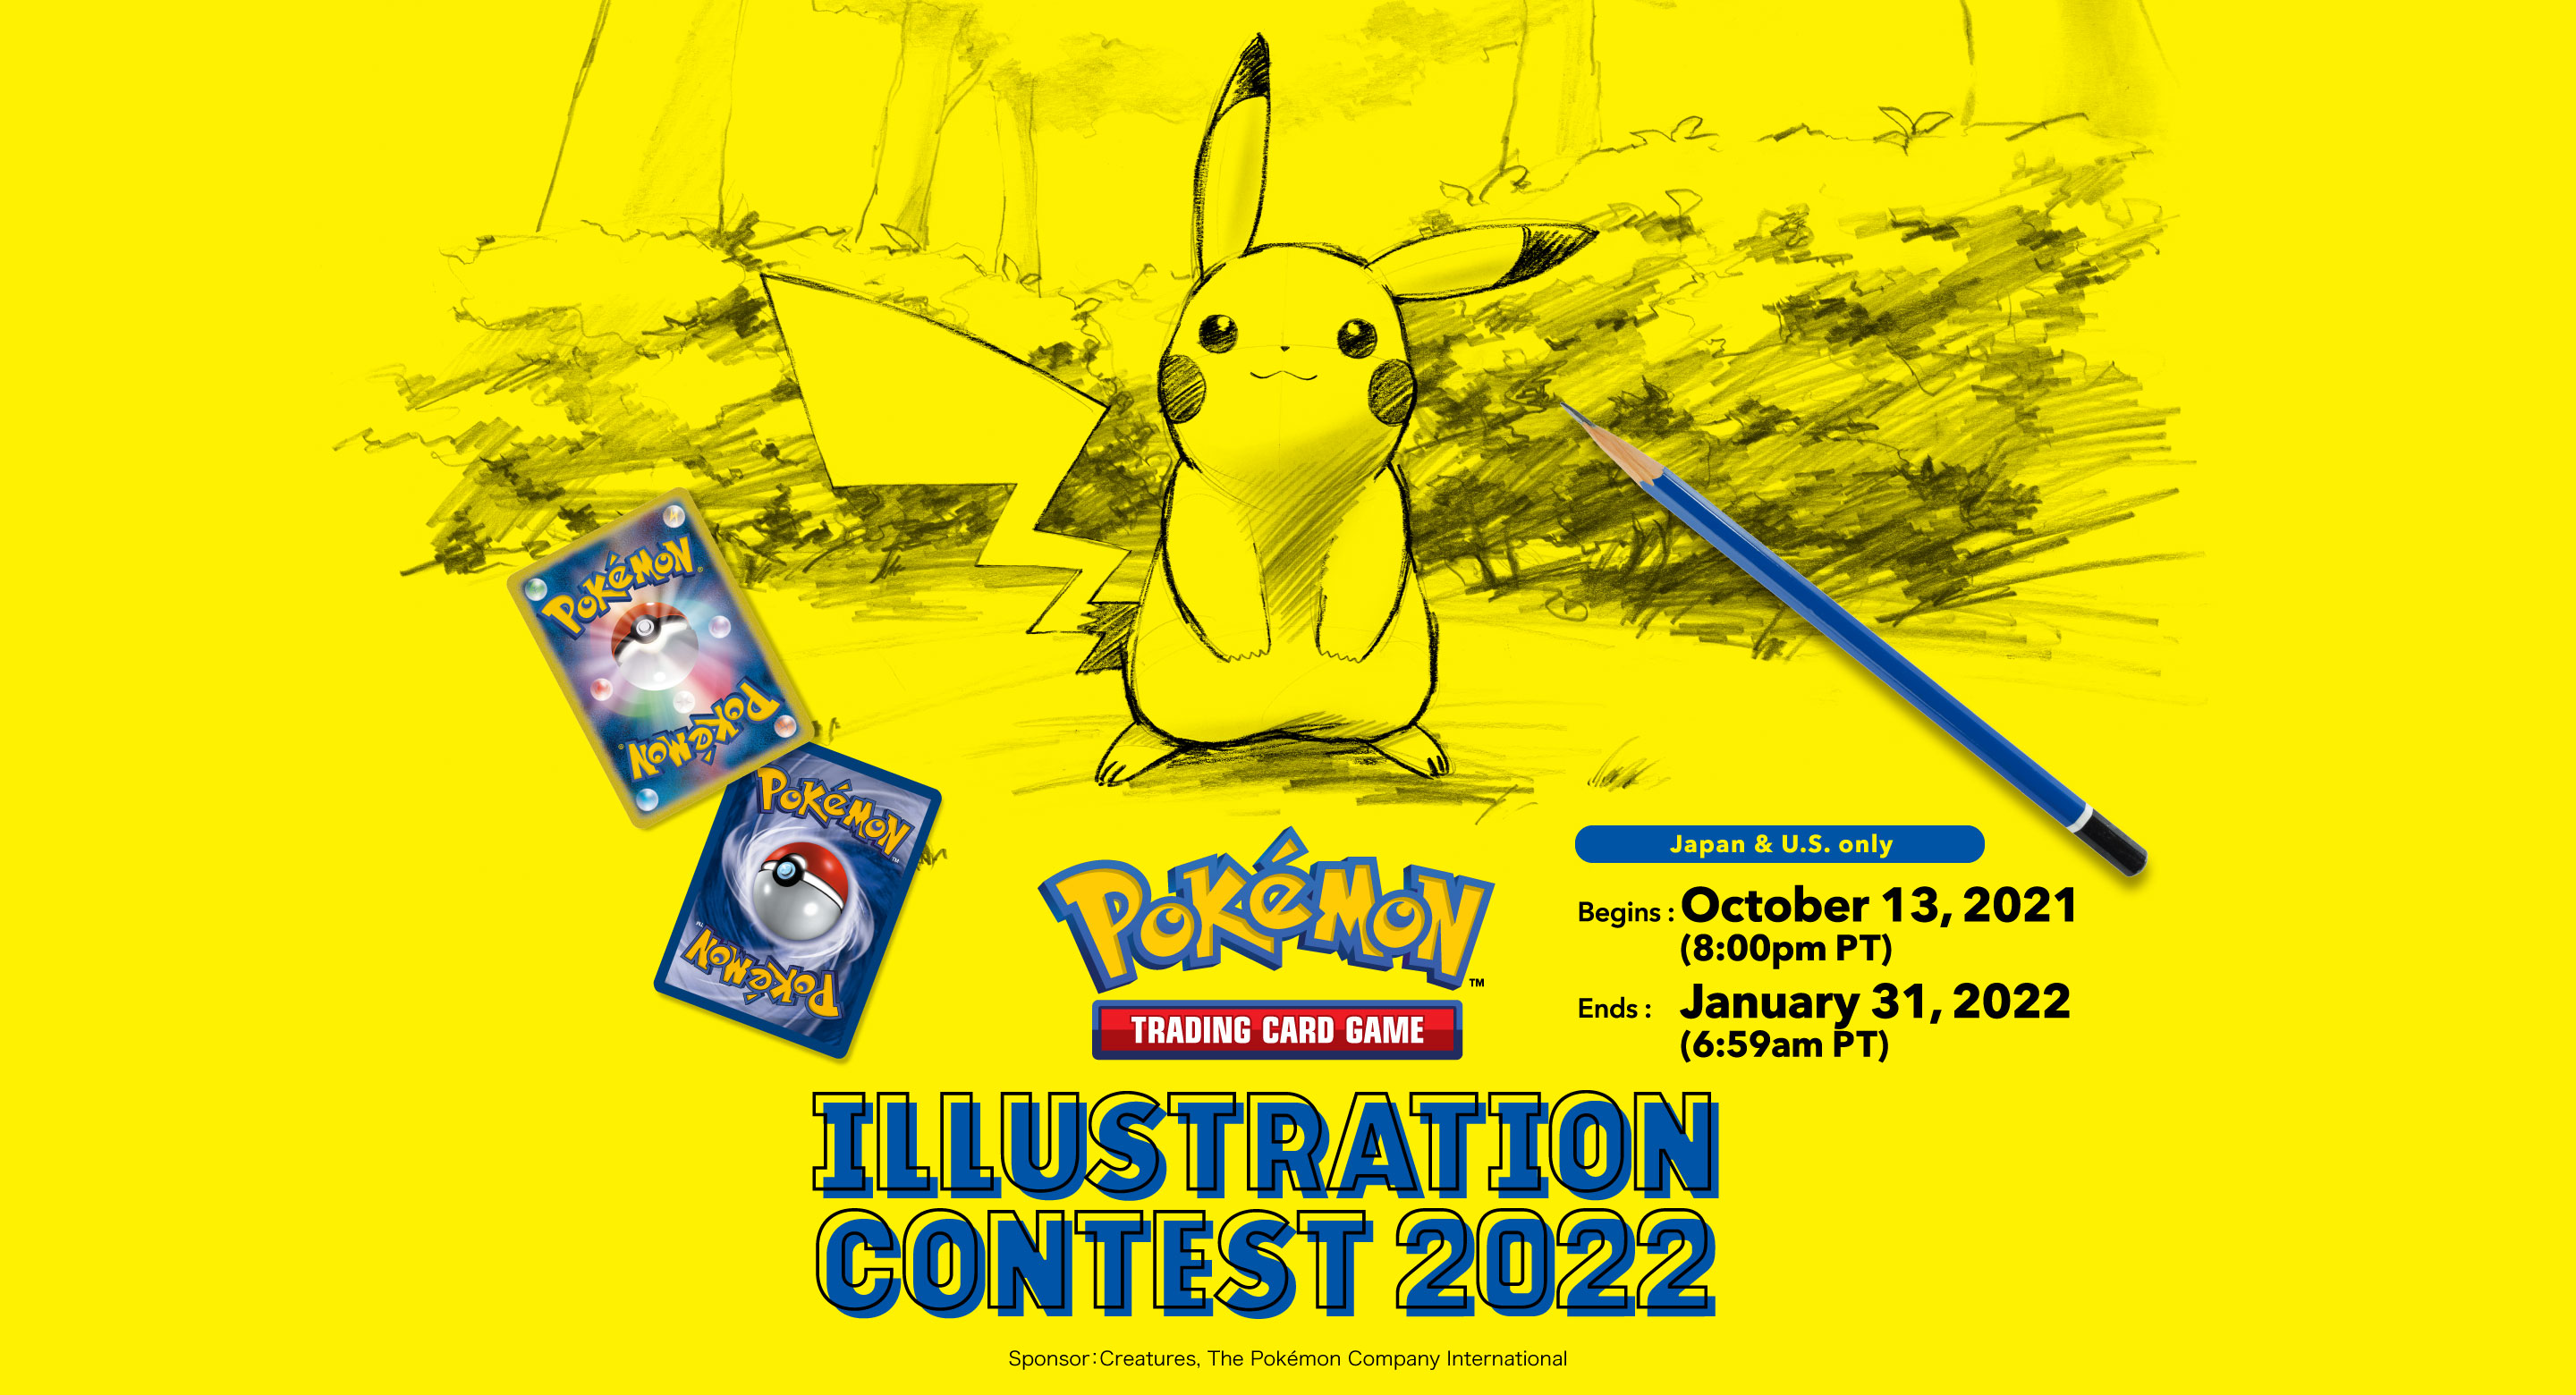 Pokémon Trading Card Game ILLUSTRATION CONTEST 2022  Japan and U.S. only October 13, 2021 (8:00PM Pacific Time) - January 31, 2022 (6:59AM Pacific Time) Sponsor: Creatures, The Pokémon Company International